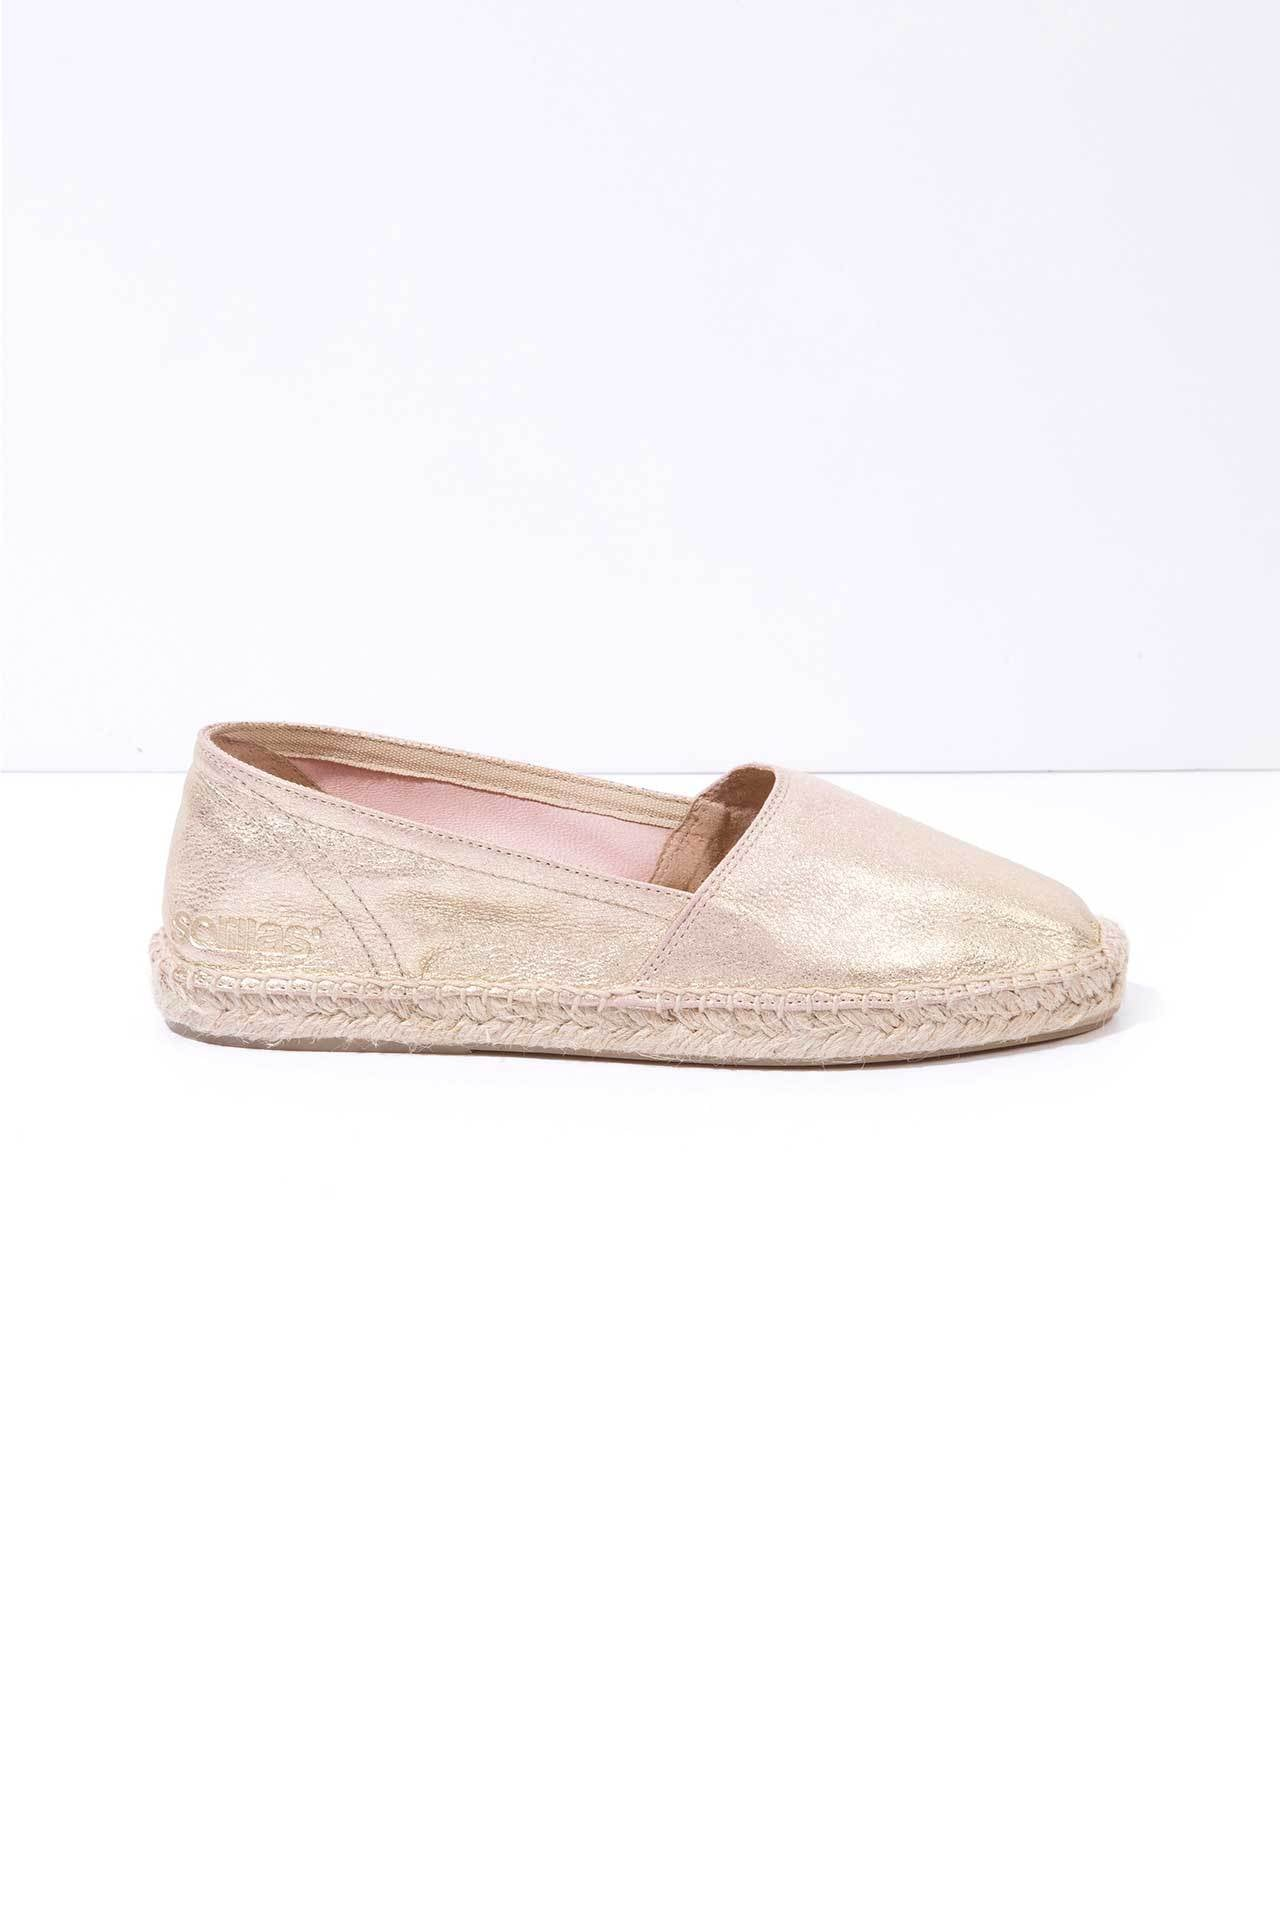 8ec9b763353 Vedella - Dusted Leather Espadrilles